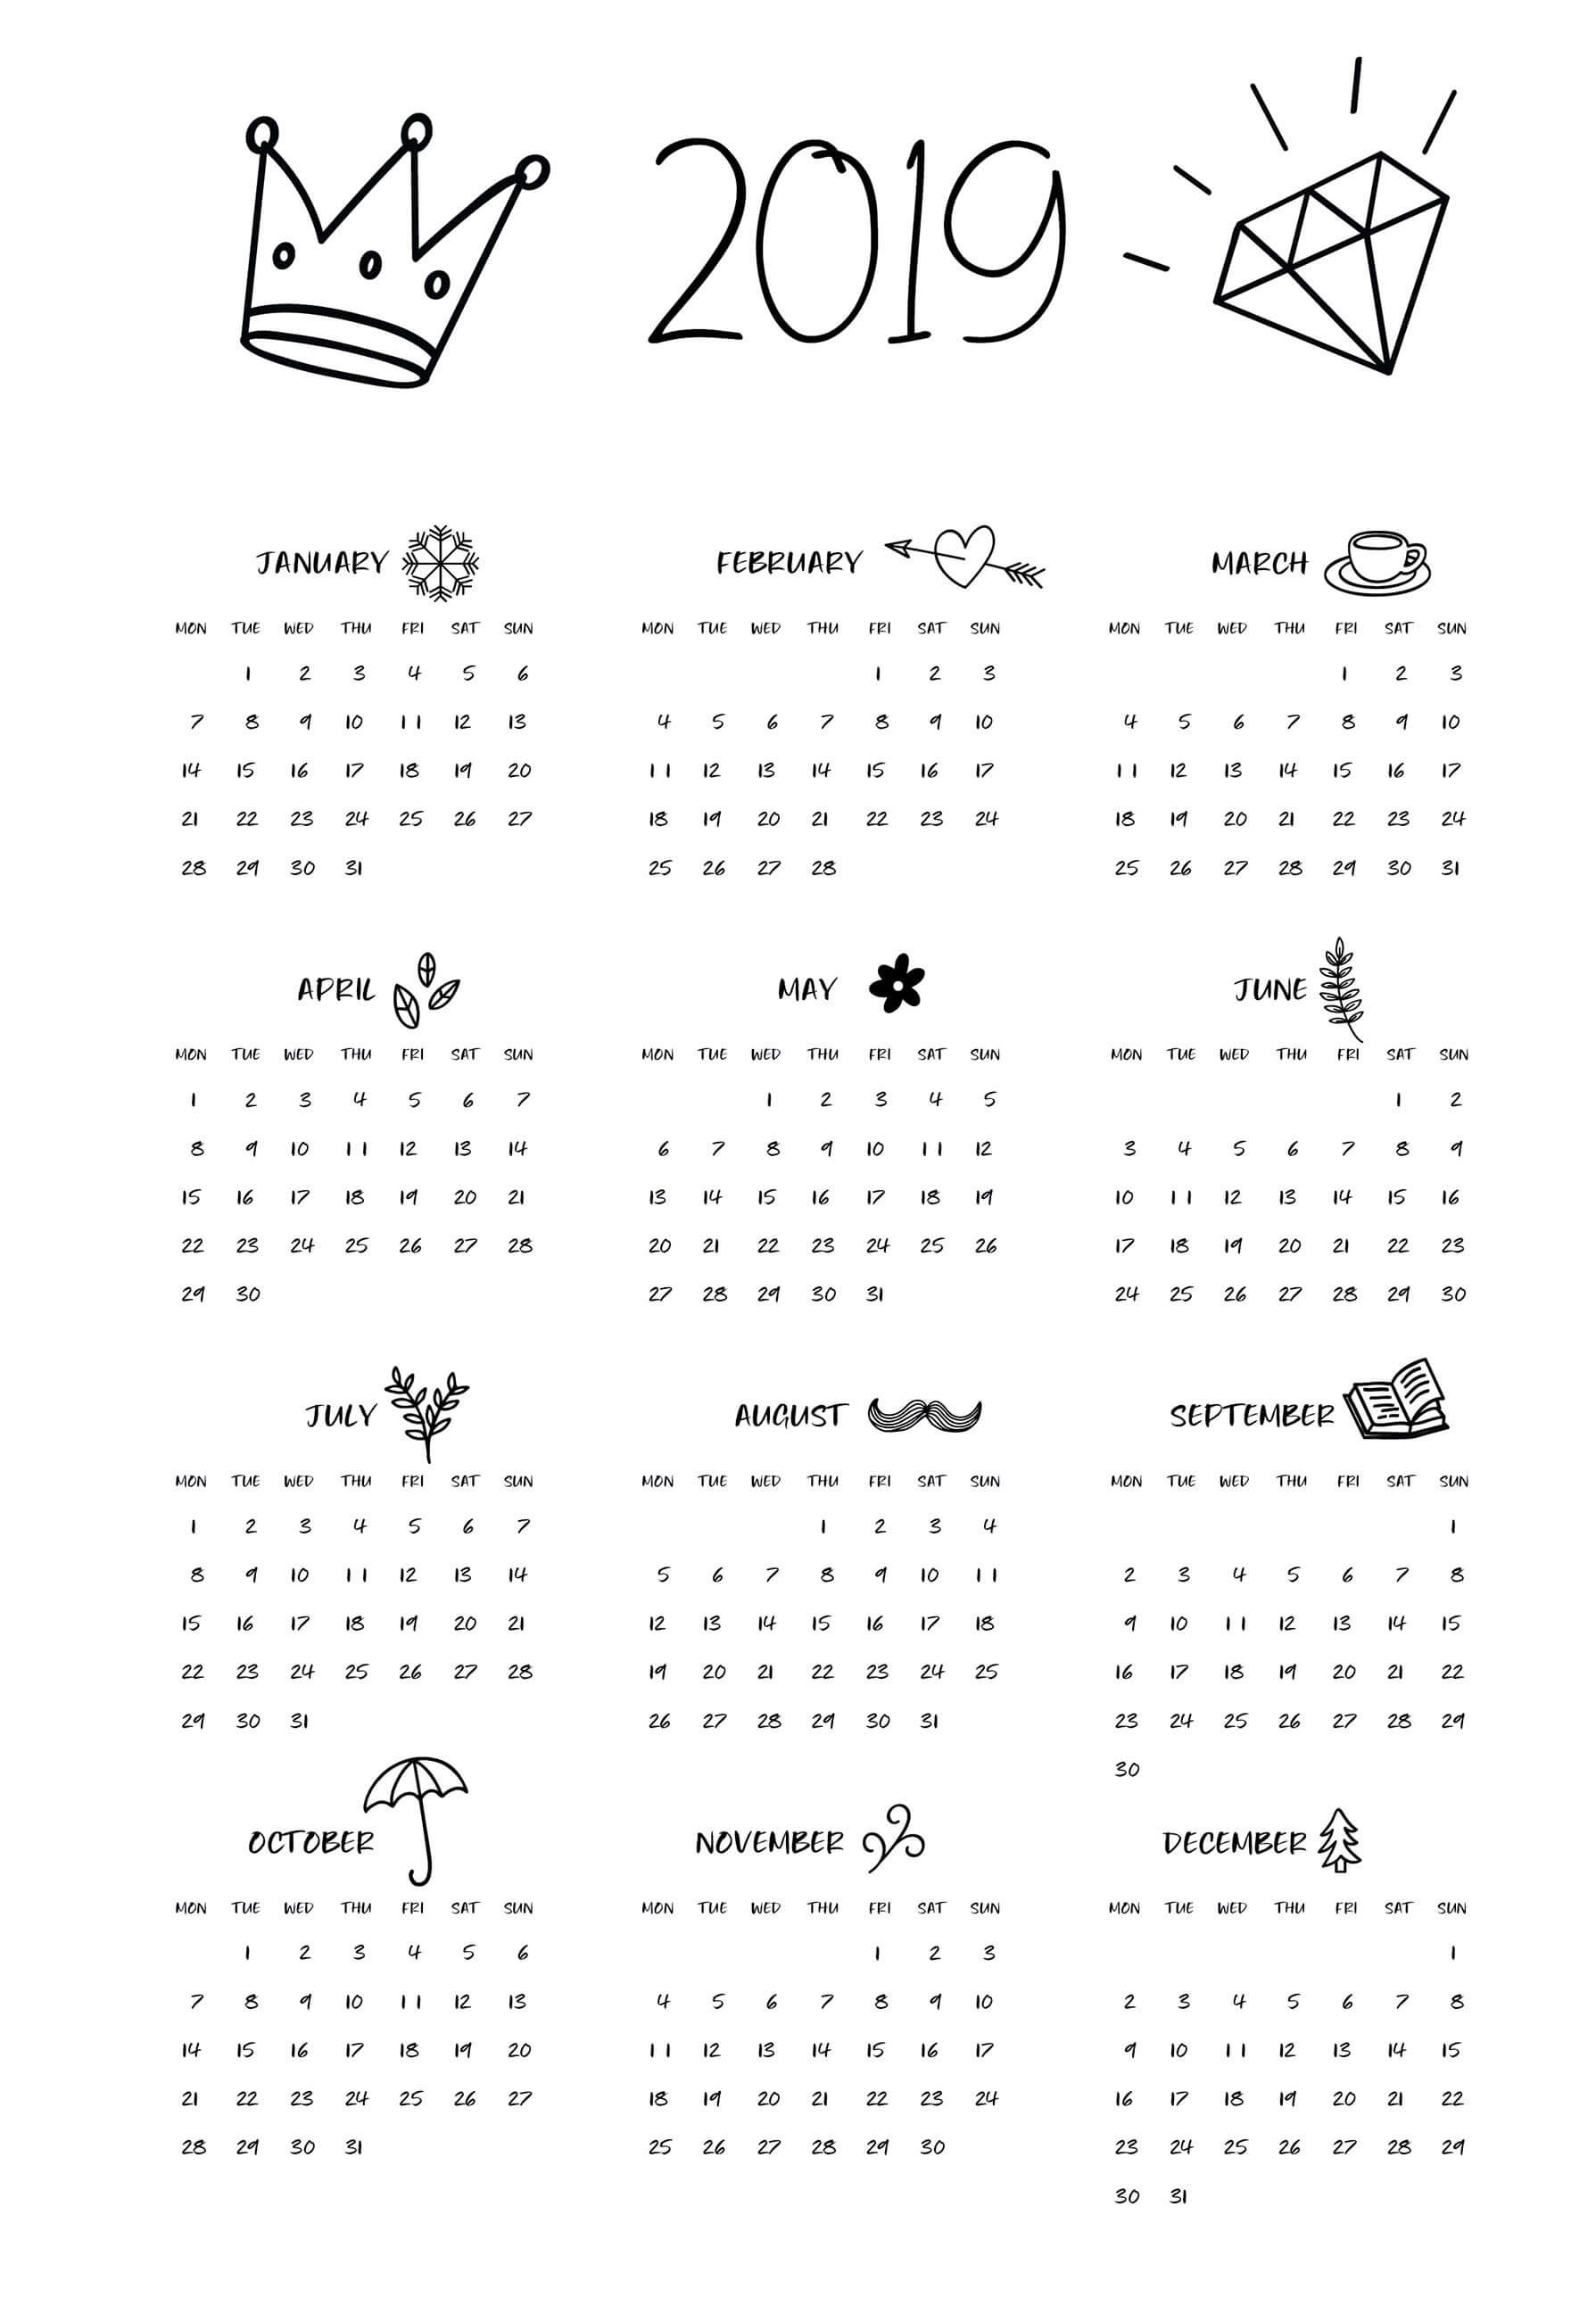 2019 Calendar - Beta Calendars U Washington Calendar 2019